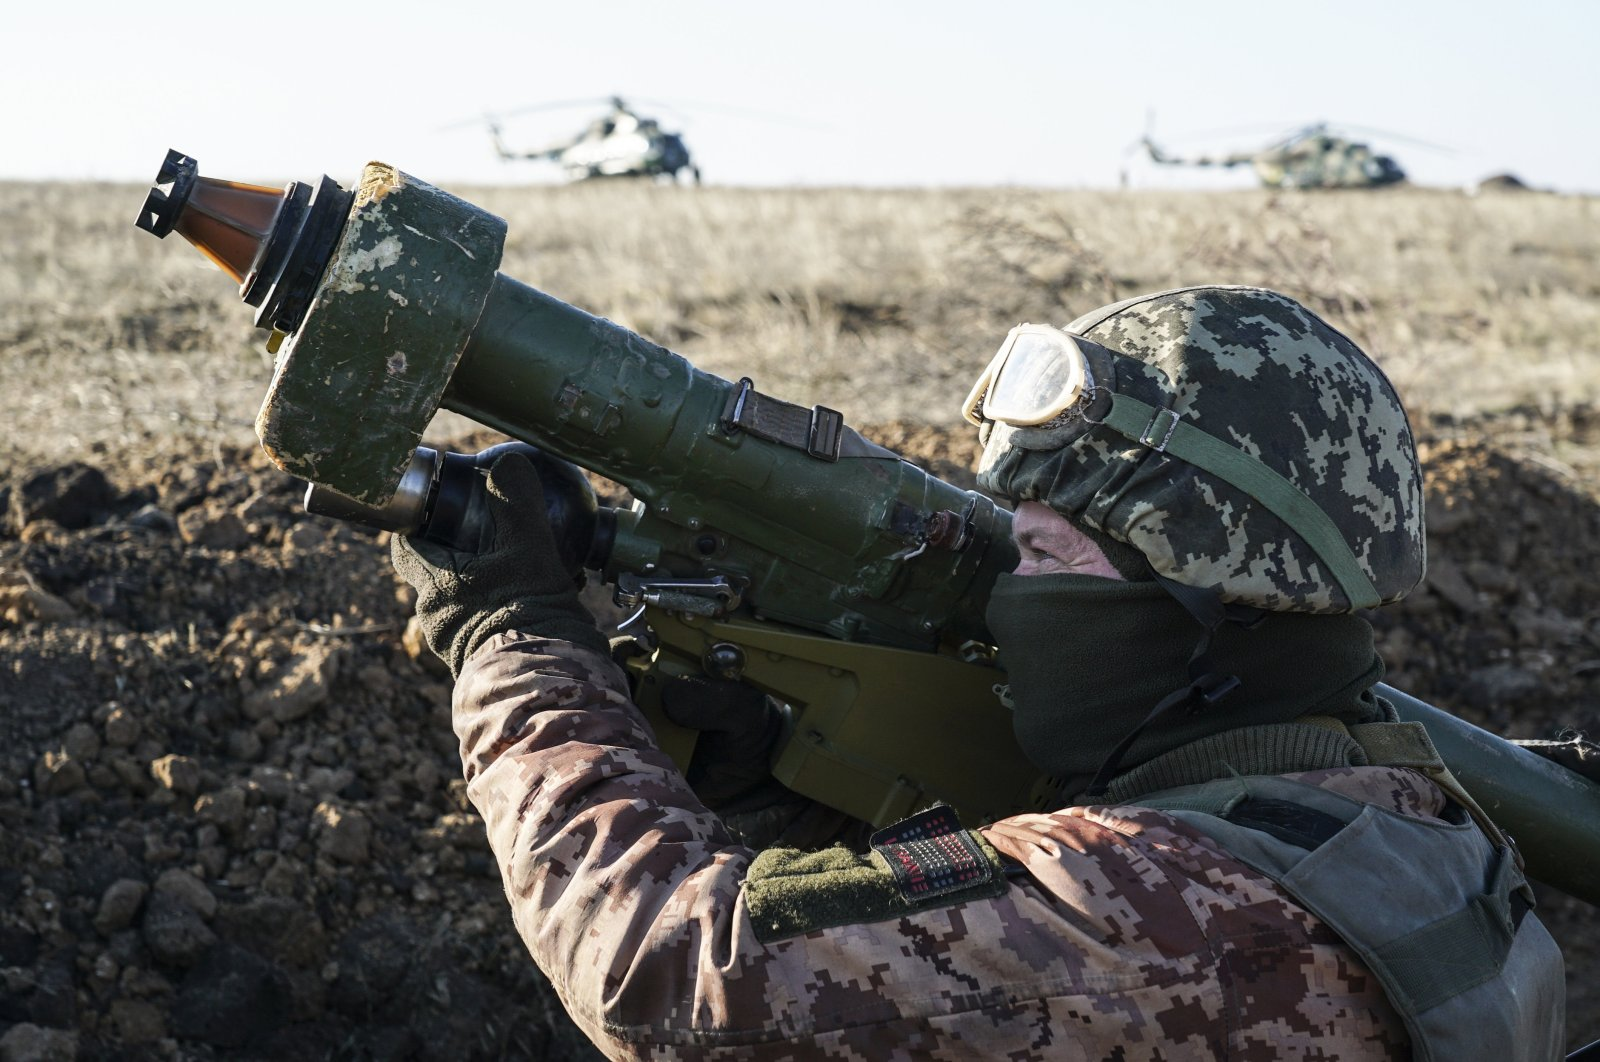 A Ukrainian soldier aims with an anti-aircraft rocket launcher during military exercises near Urzuf, south coast of Azov sea, eastern Ukraine, Nov. 29, 2018. (AP Photo)